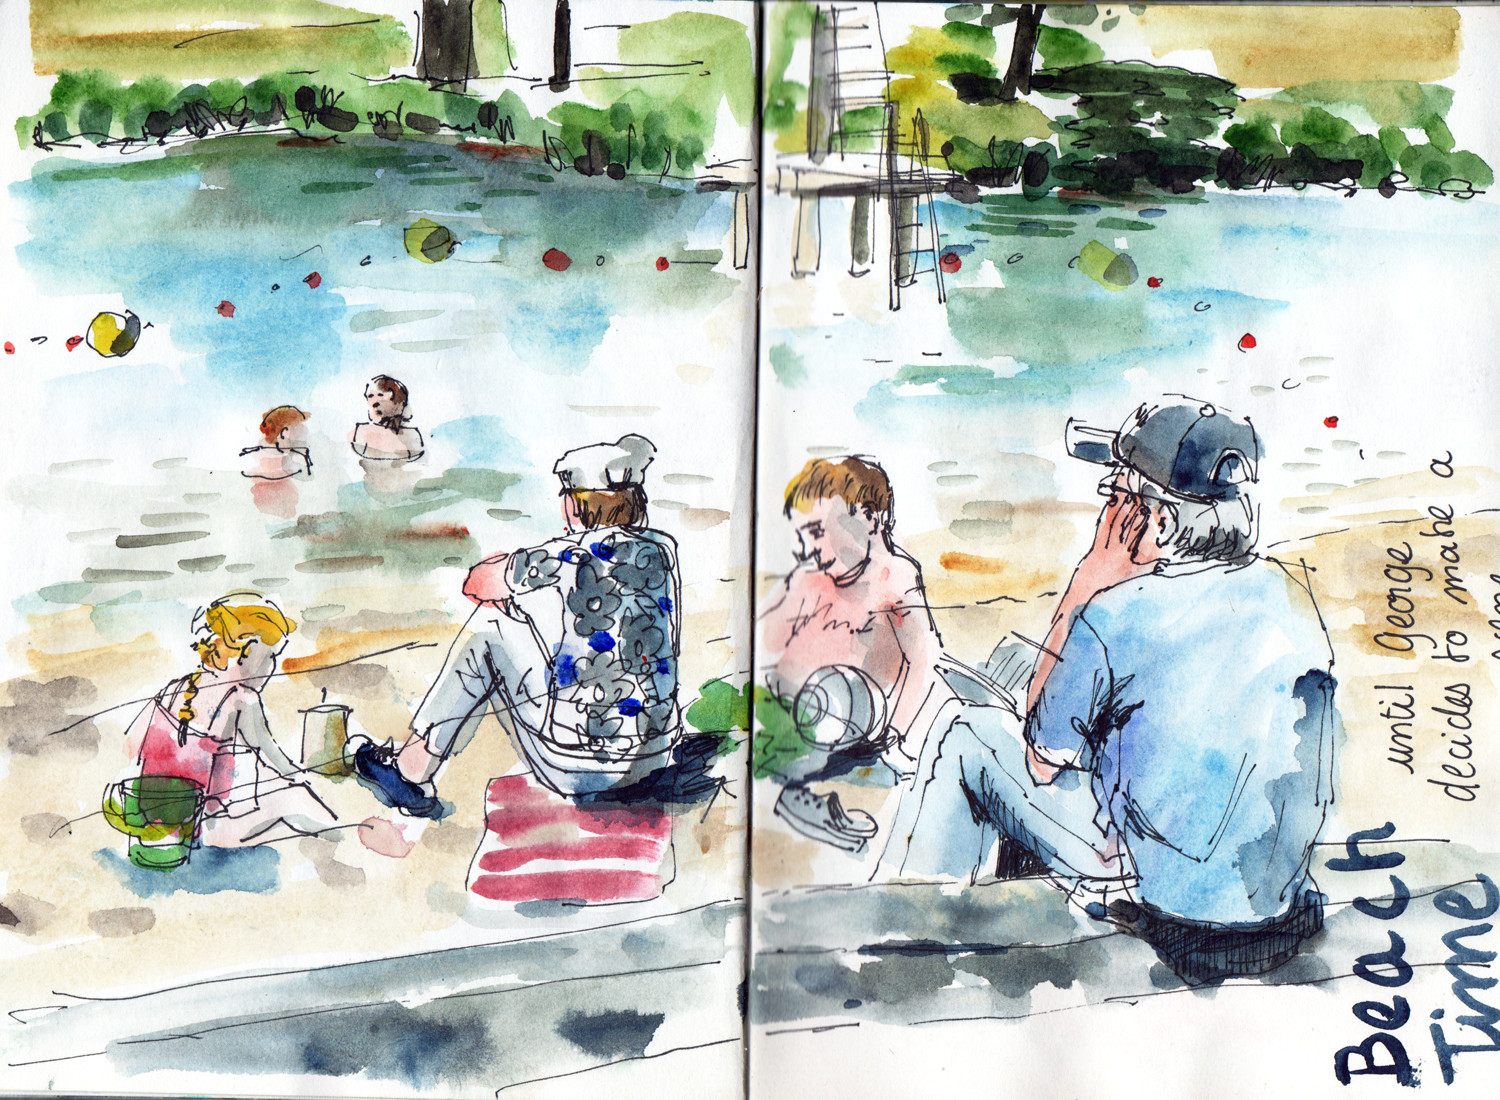 Lake side in pen and watercolour by Sophie Peanut